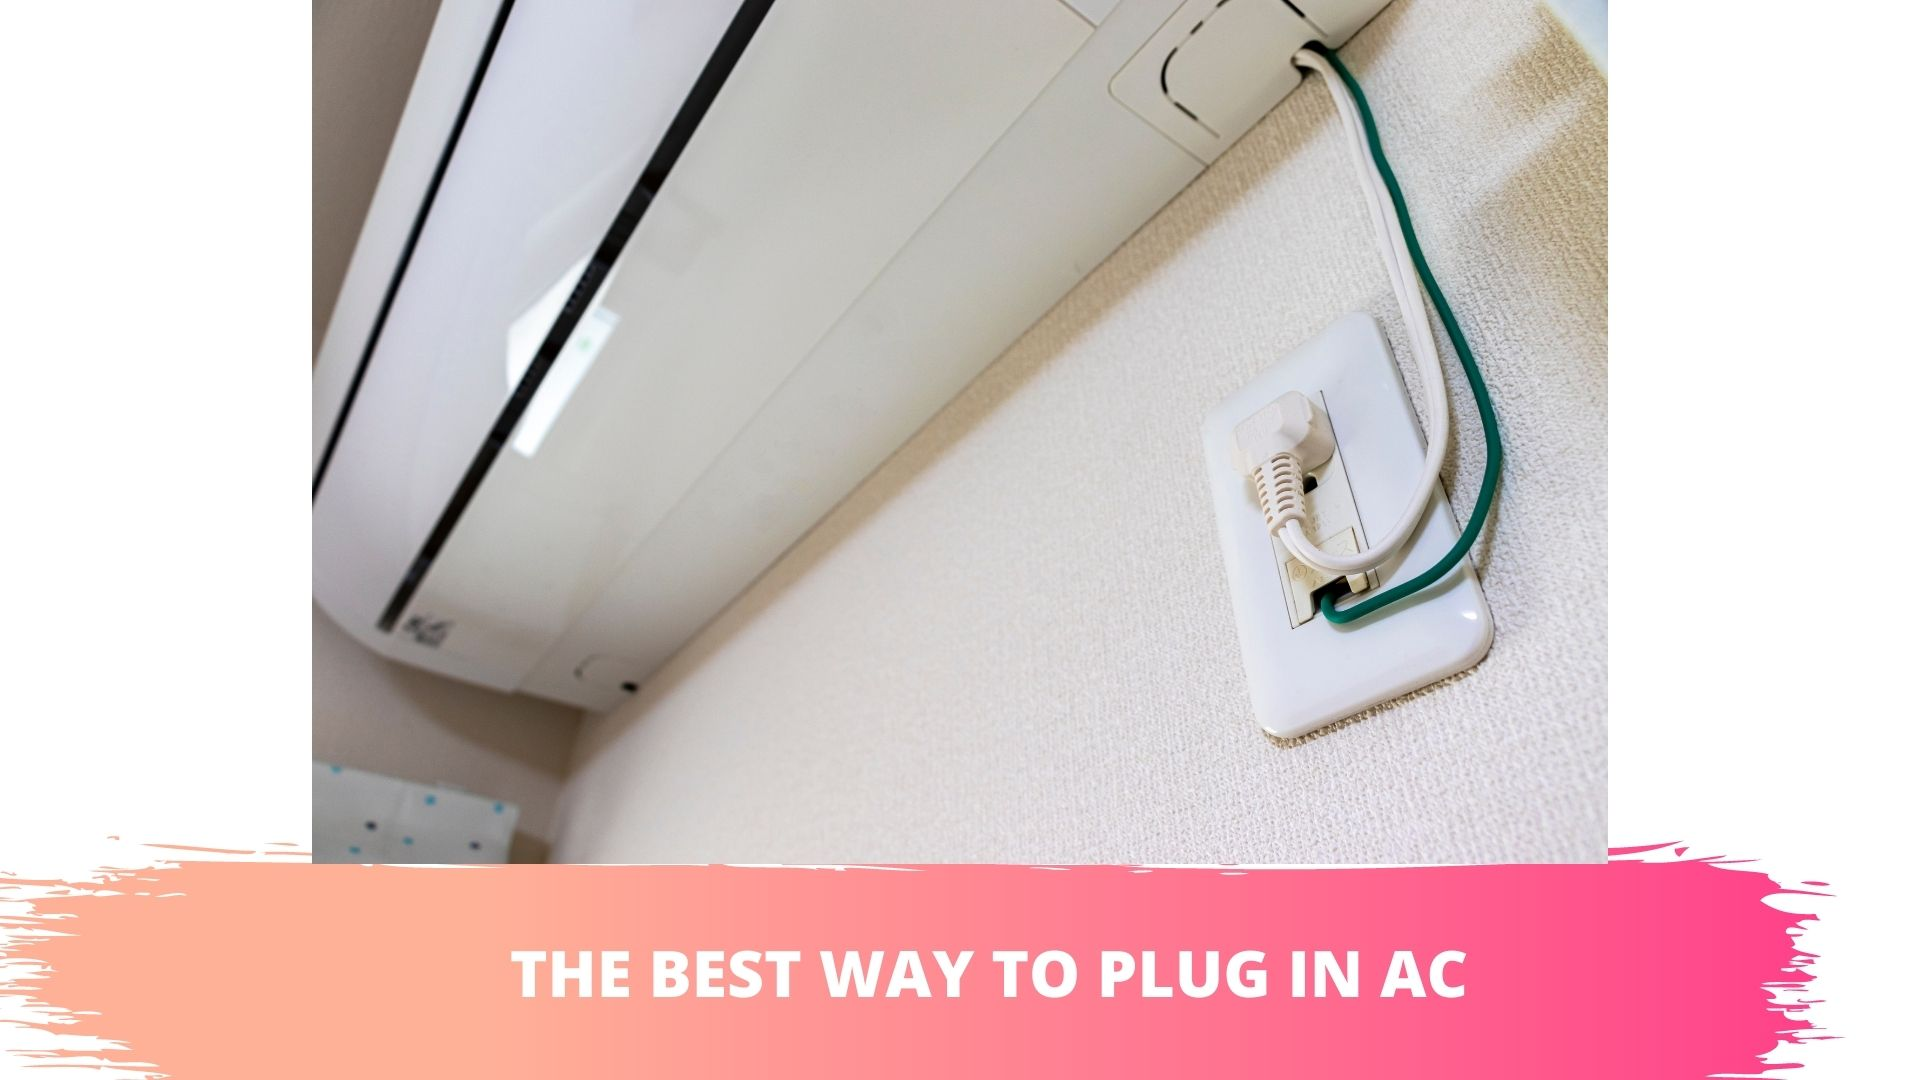 ac plugged into regular outlet